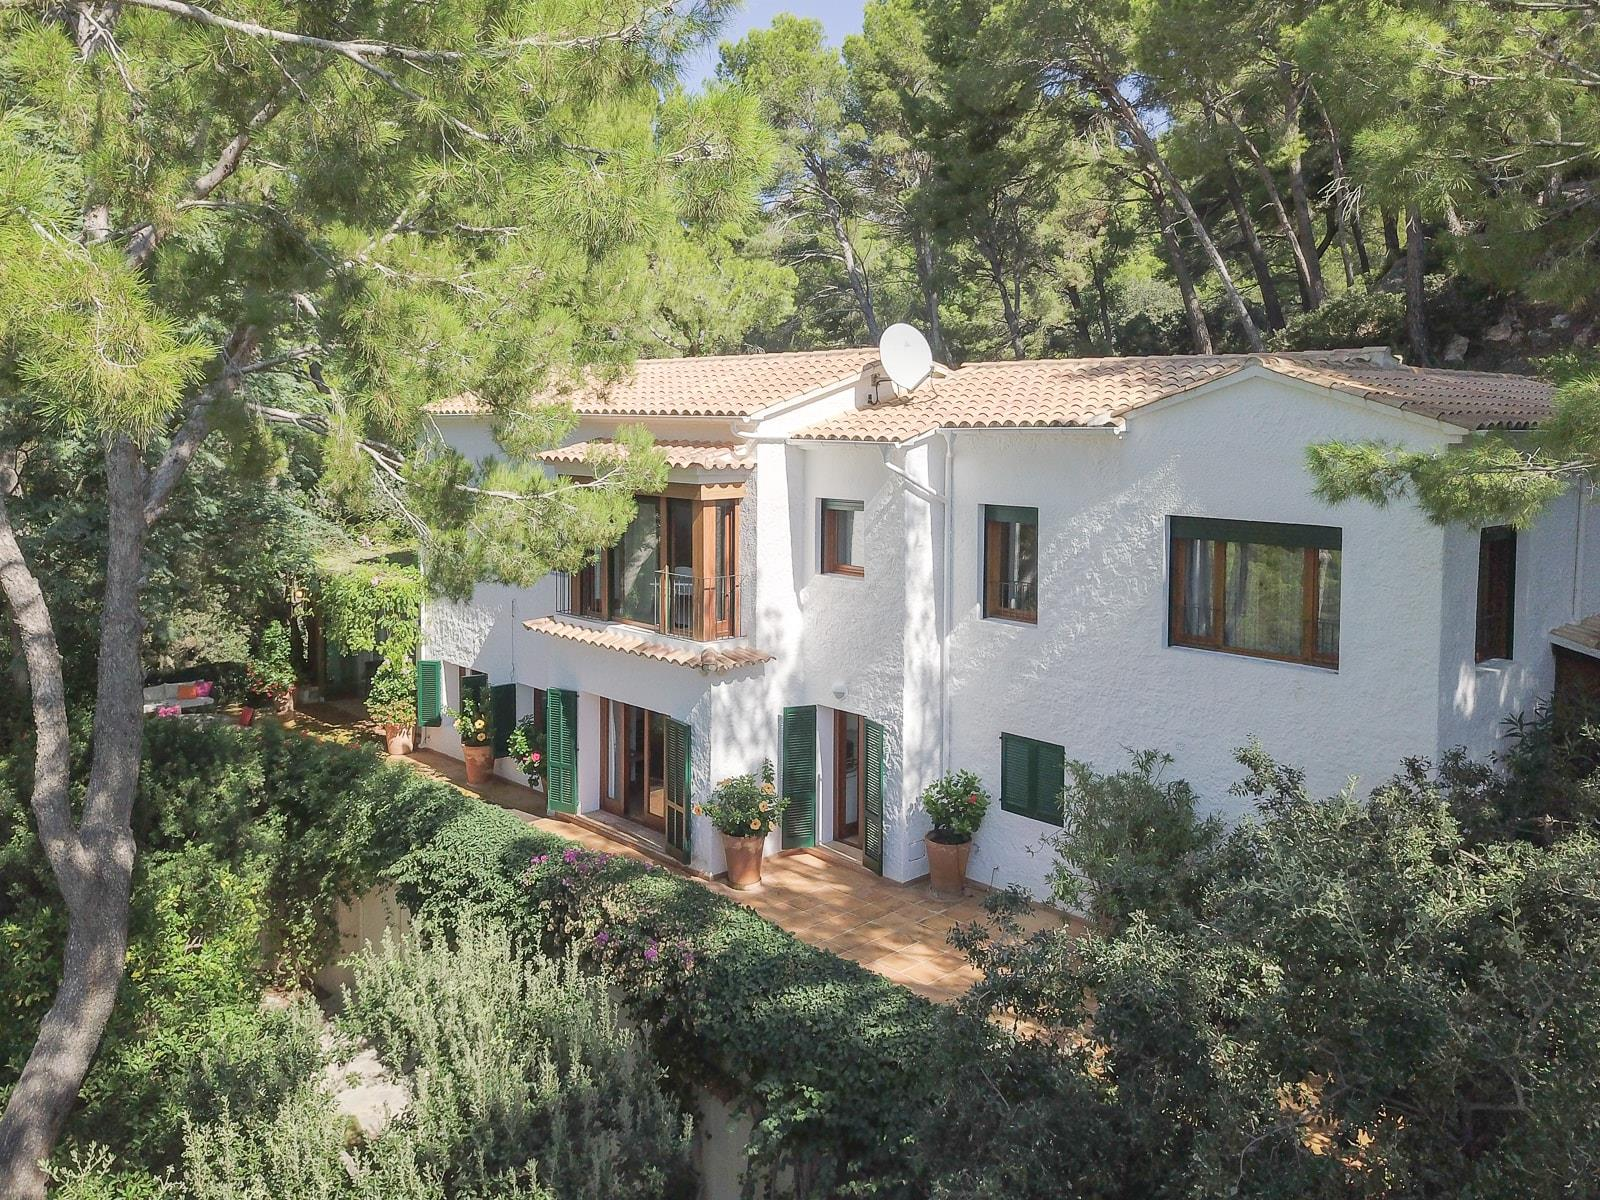 Property for sale Spain - Houses Sale in Spain